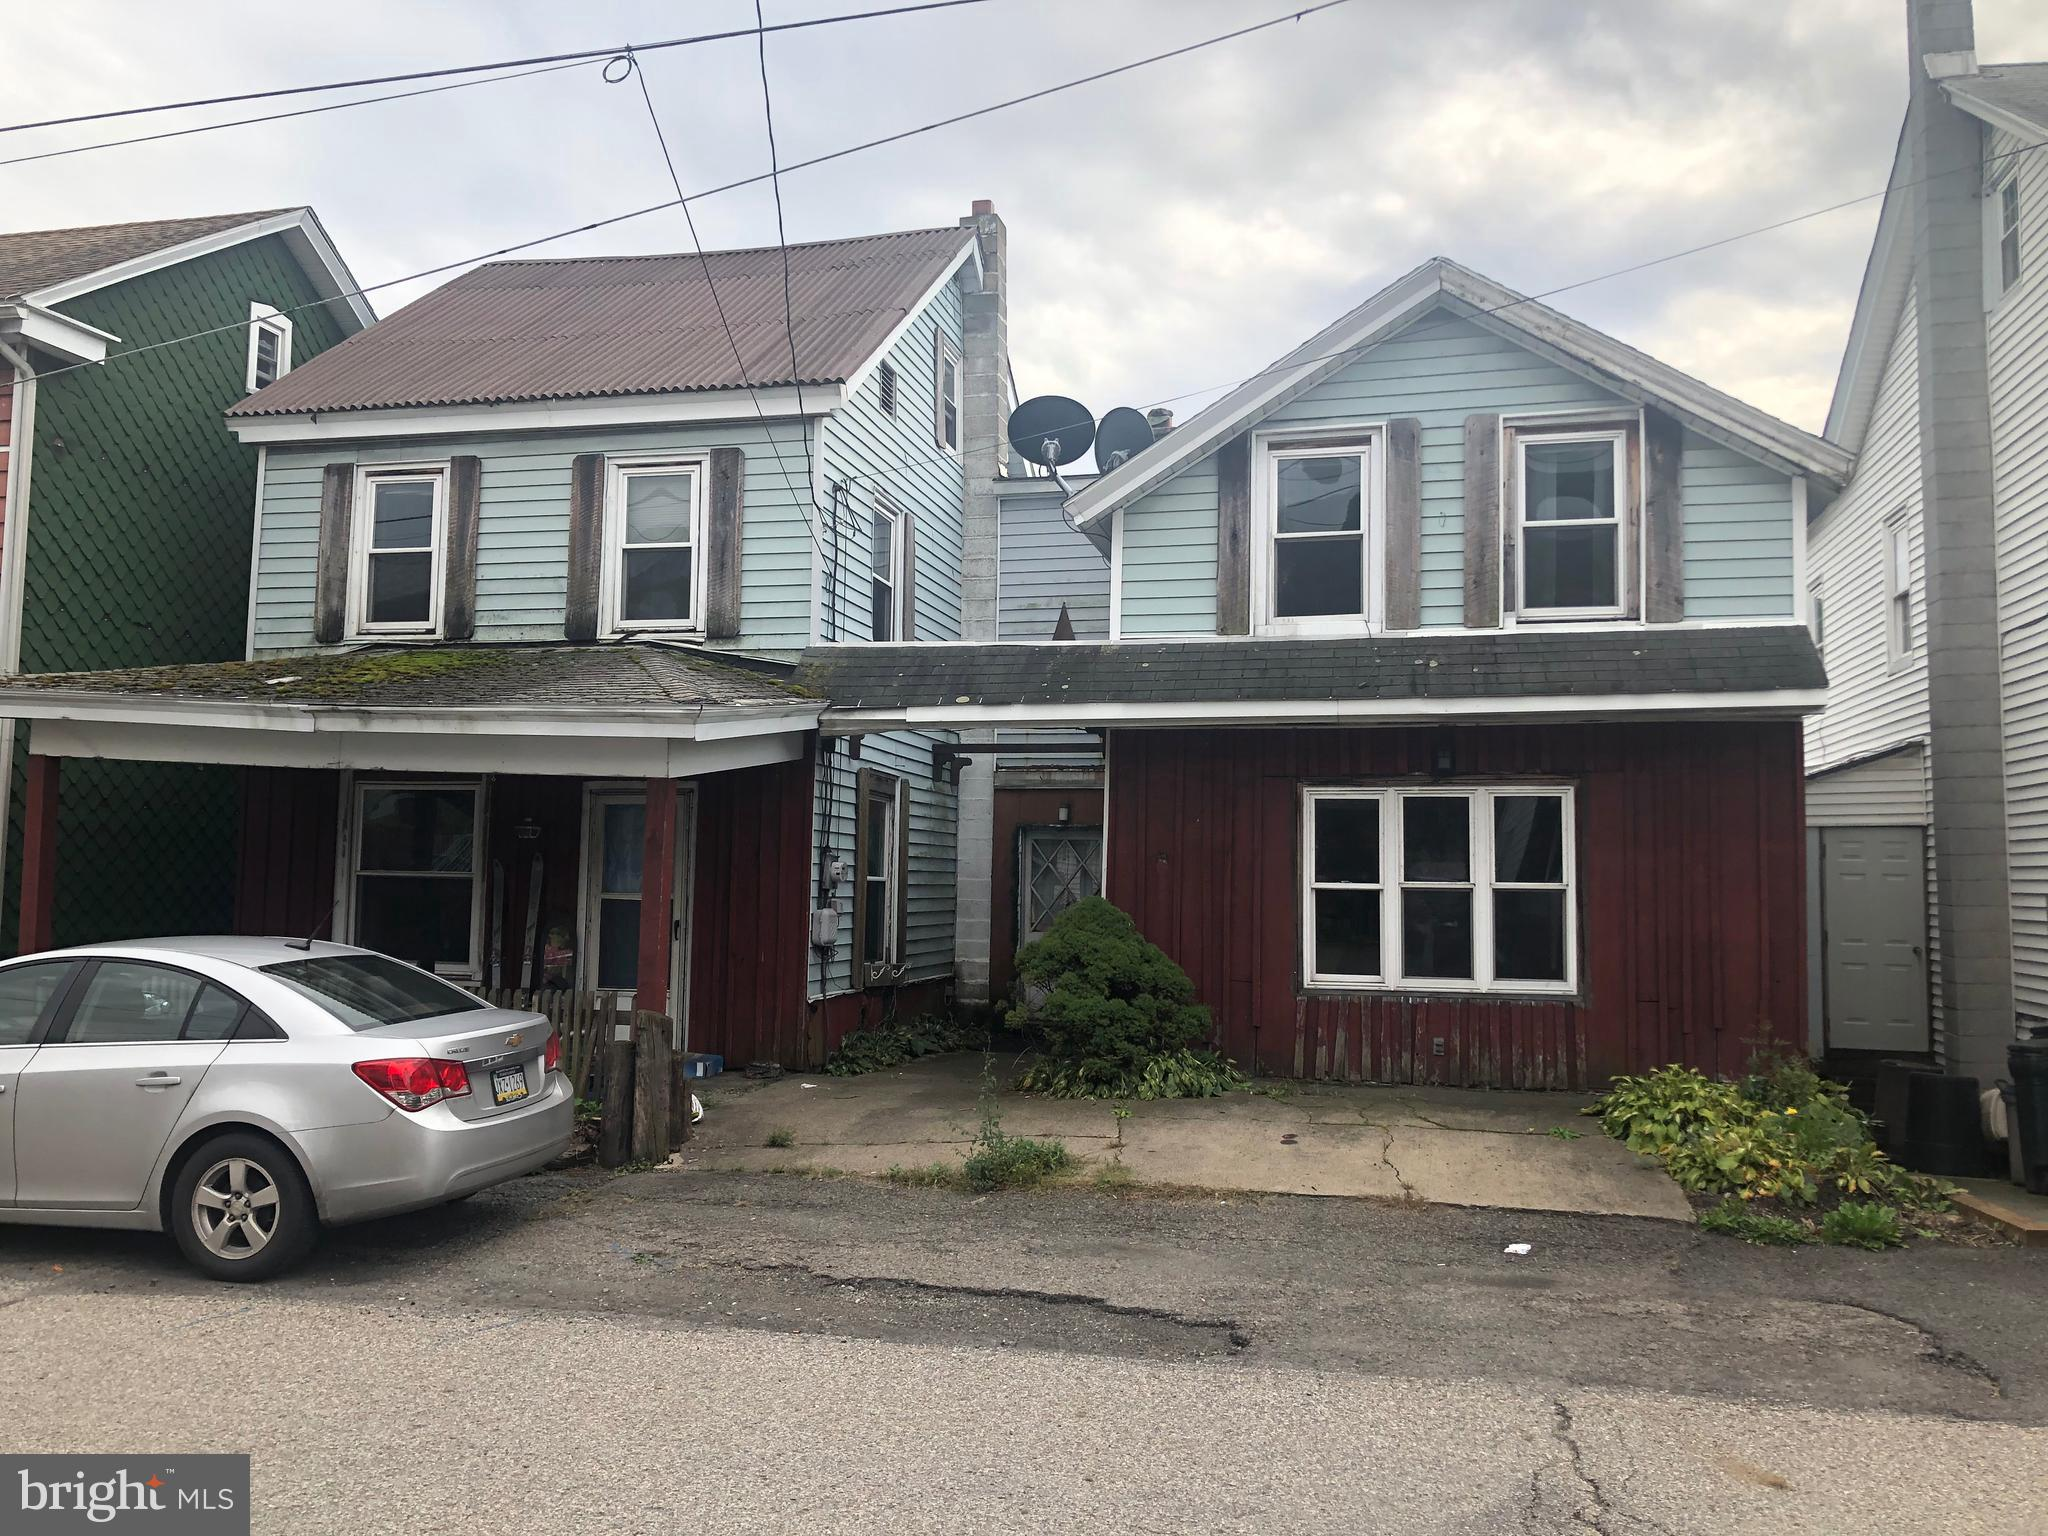 311 CENTER STREET, LYKENS, PA 17048